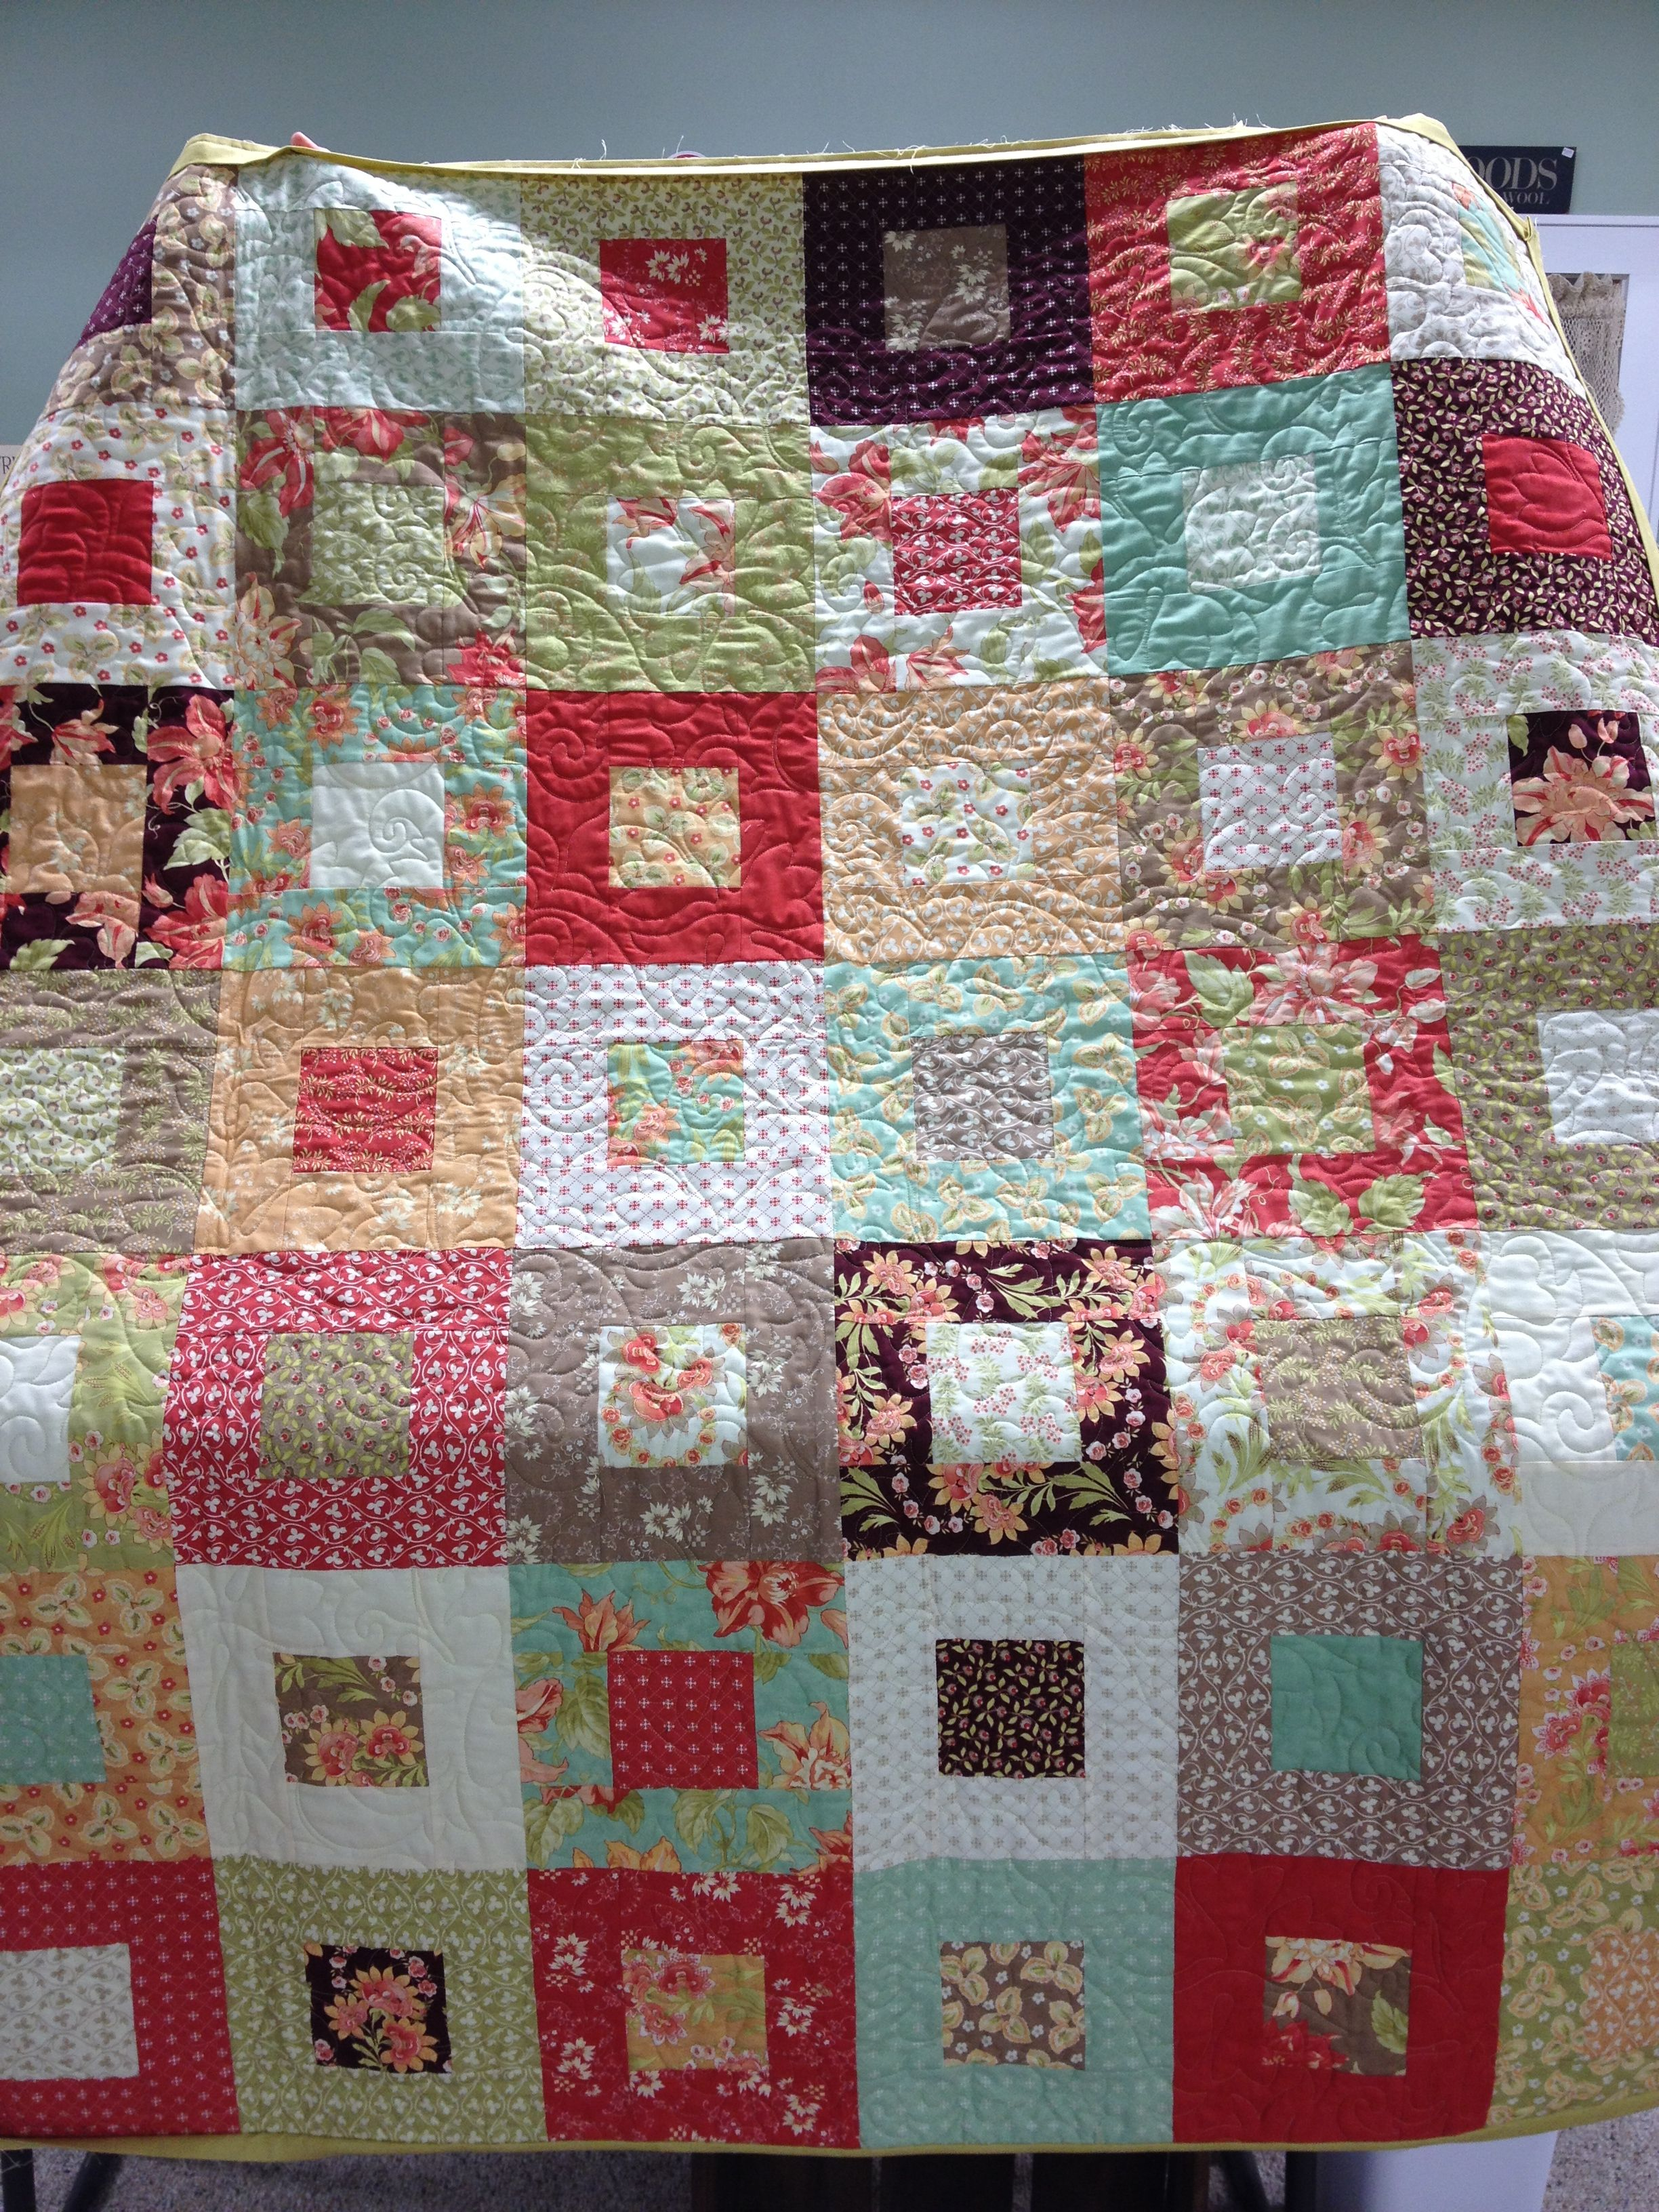 had it quilt since borders quilts and bountiful i snap panel four quick yardage of corner heirlooms img this make patches binding was the boy to baby for a center includes